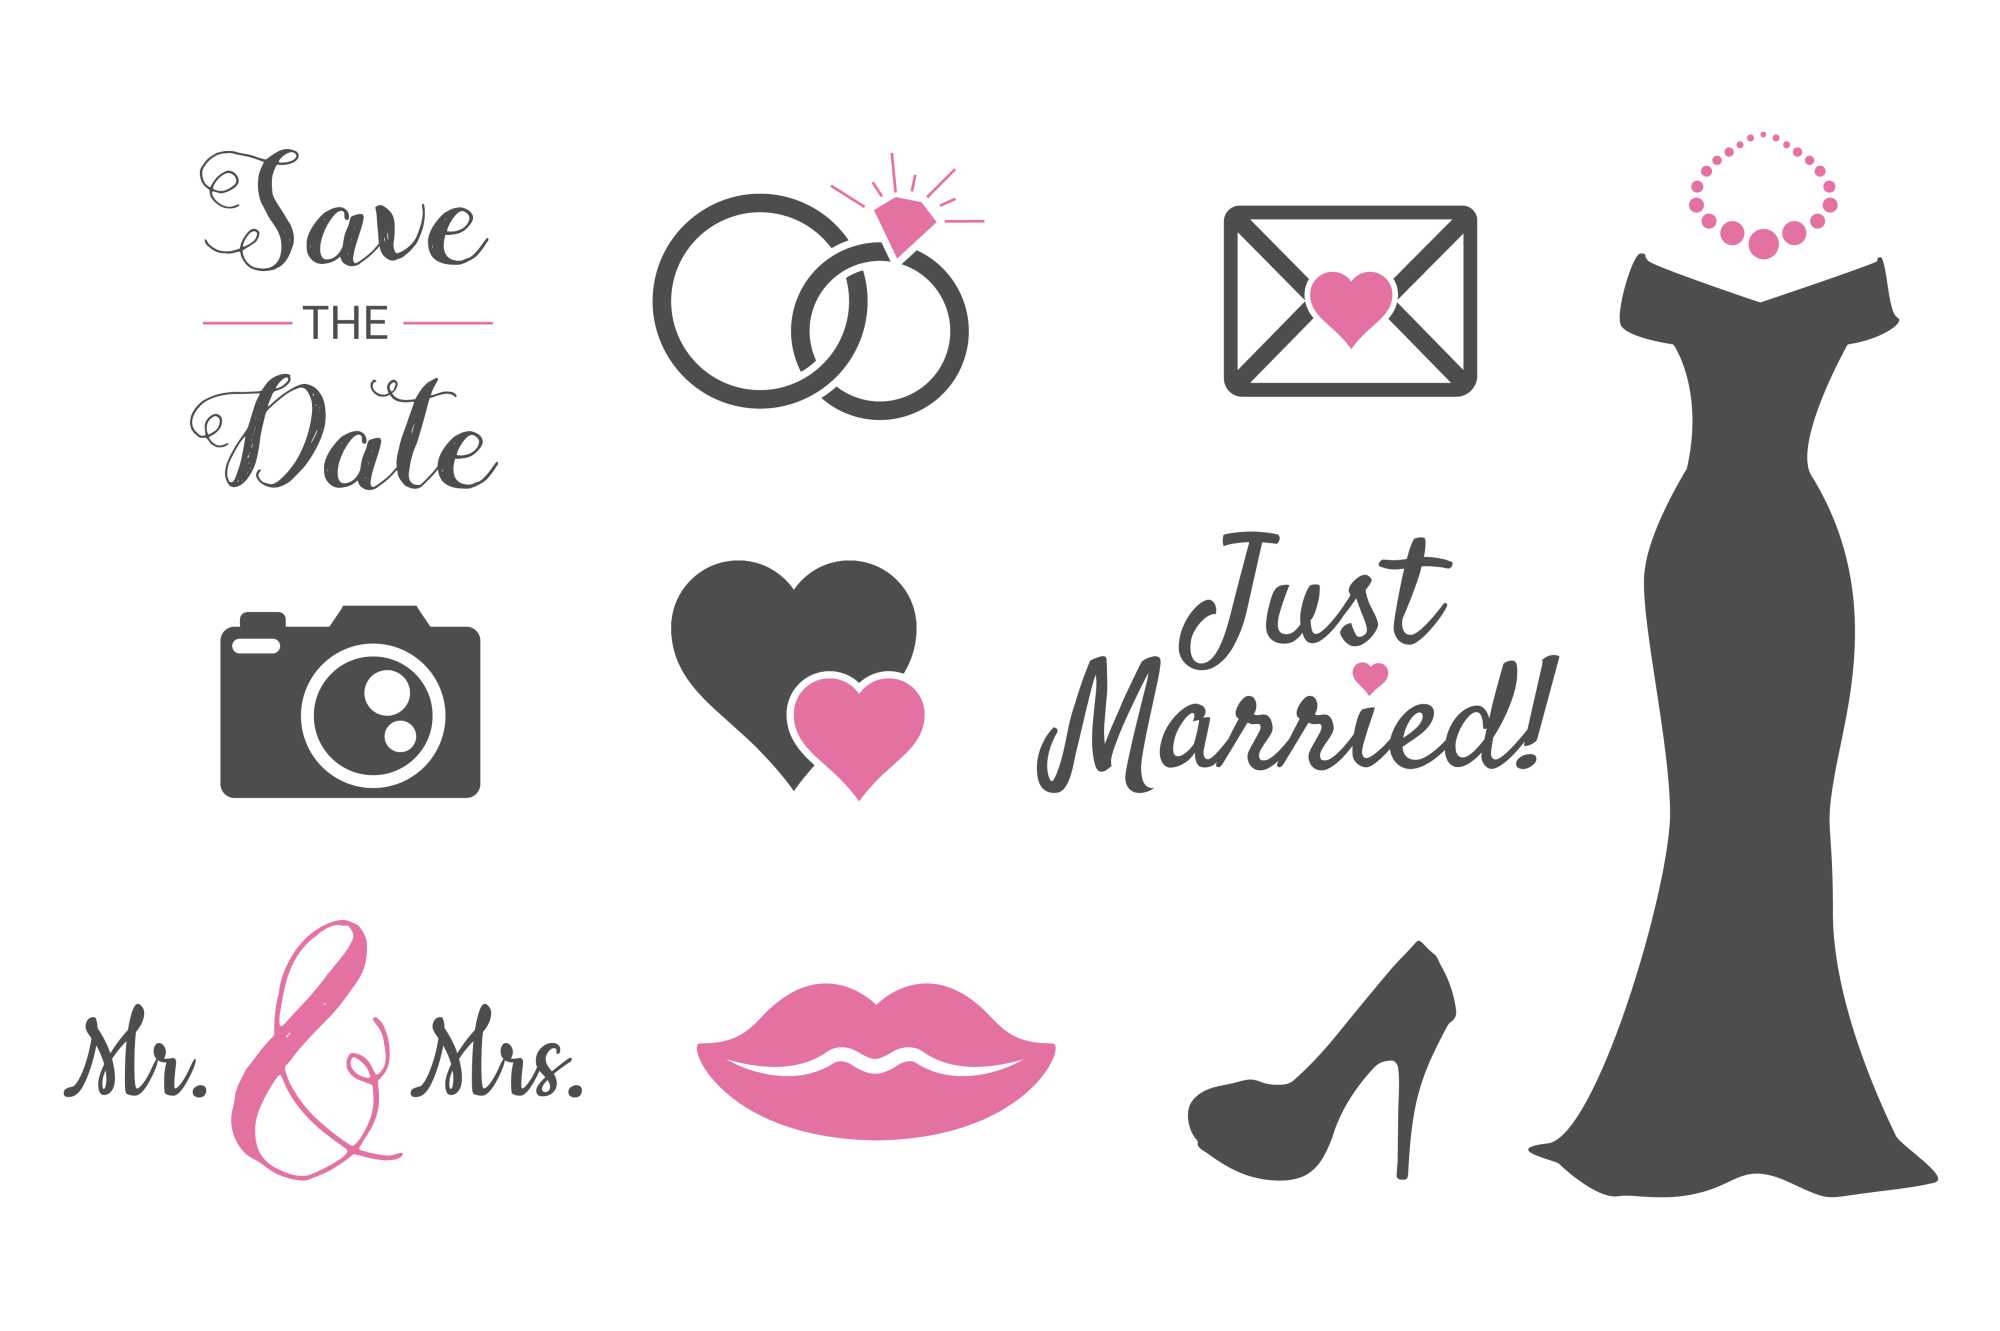 Wedding Silhouettes For Crafters 11980 Svgs Design Bundles Wedding Silhouette Crafters Design Bundles